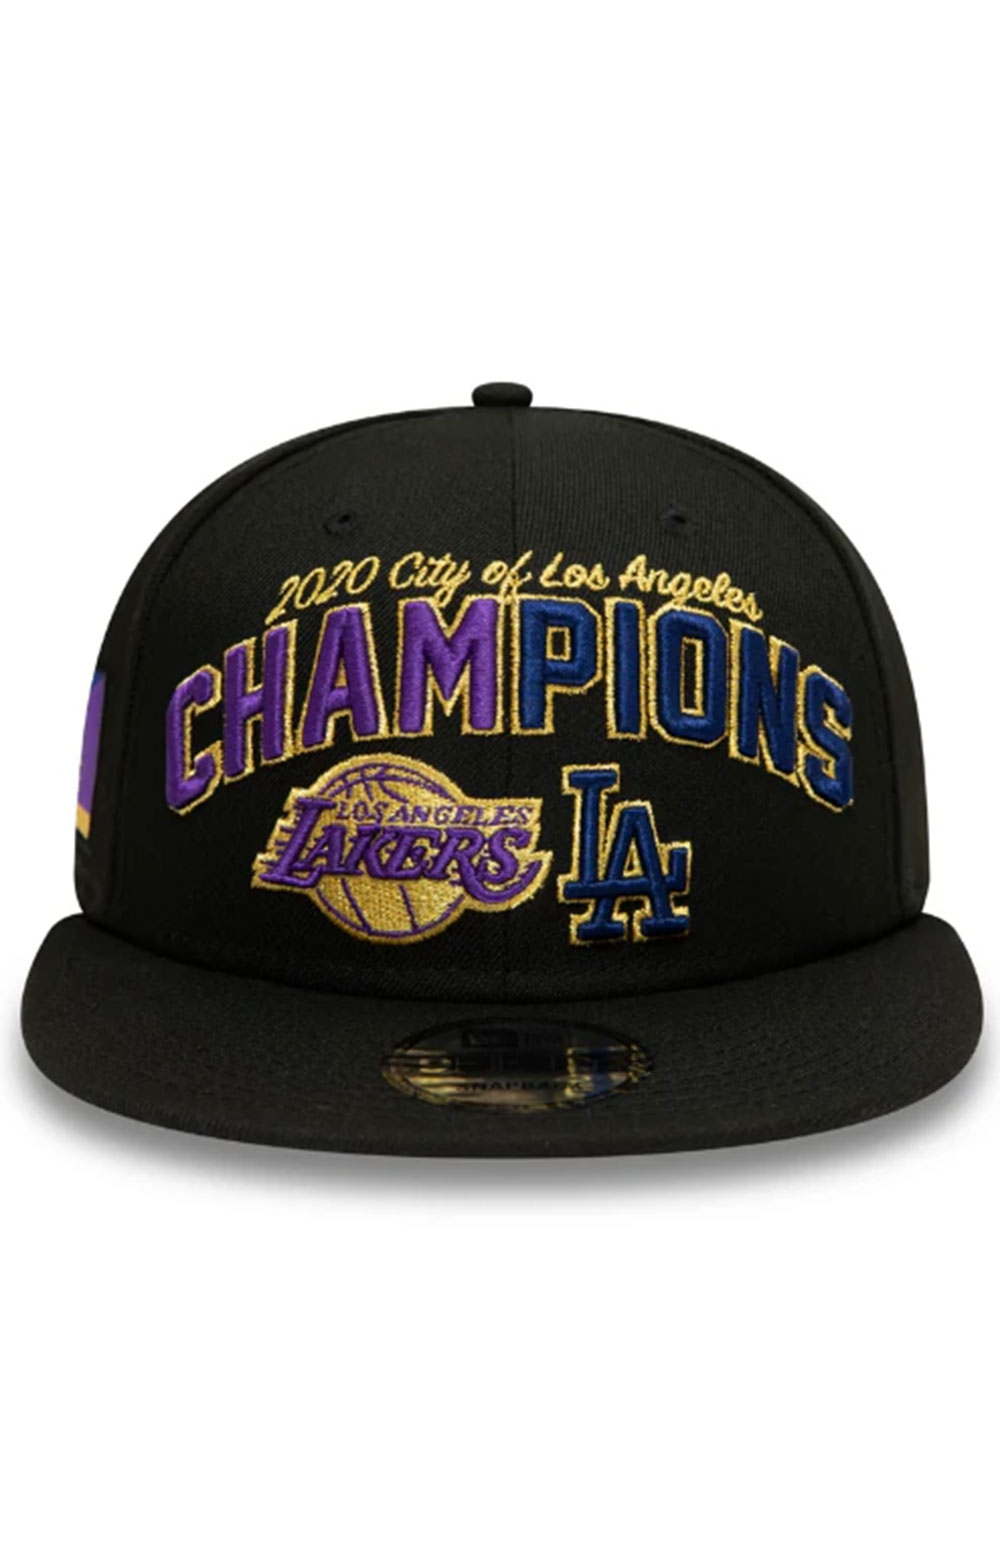 Los Angeles Co Champs 2020 9FIFTY Snap-Back - Black 3